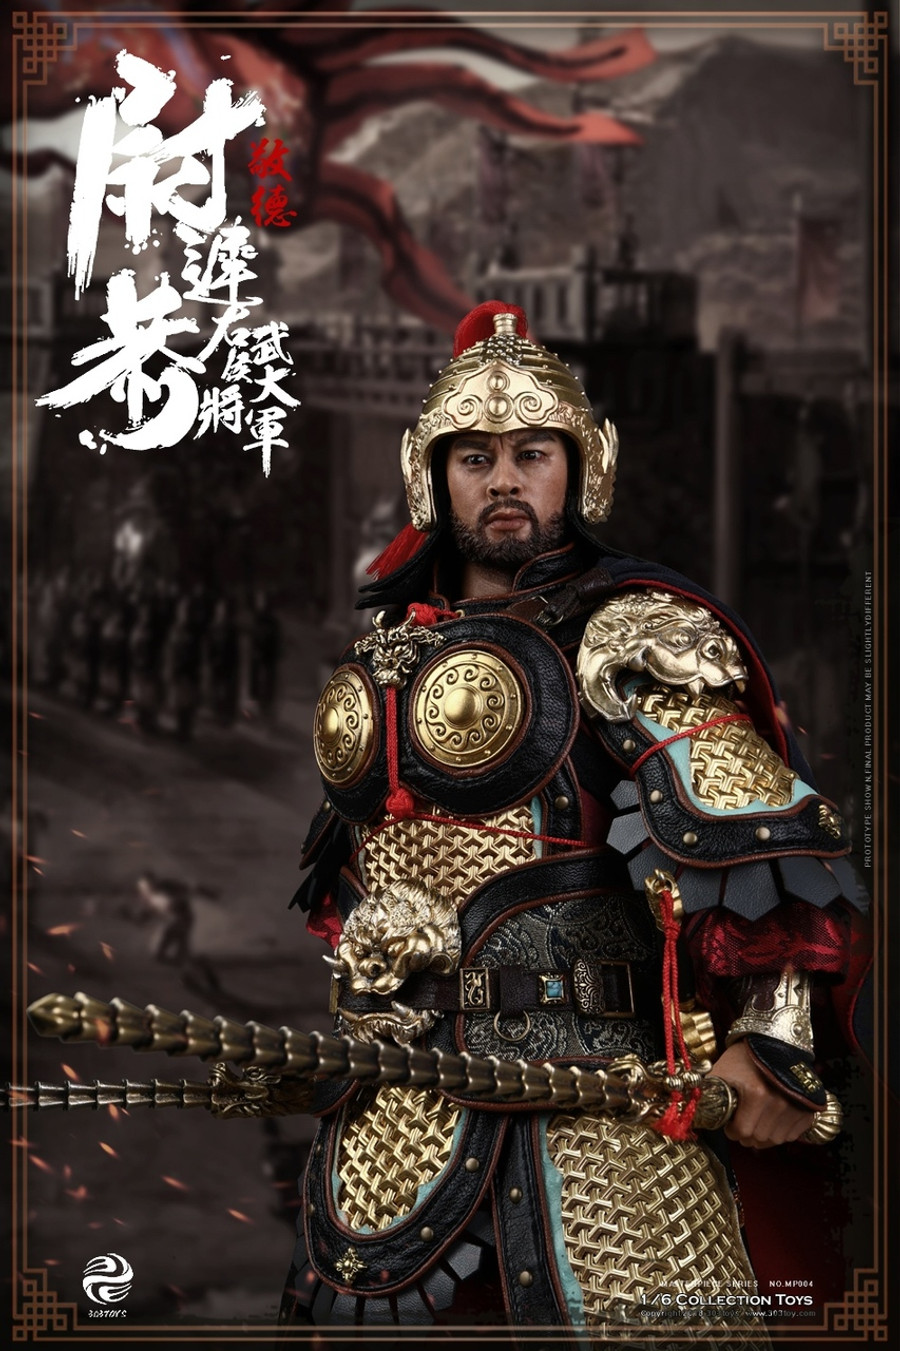 303 Toys - The Military Marquis - Yuchi Gong A.K.A Jingde